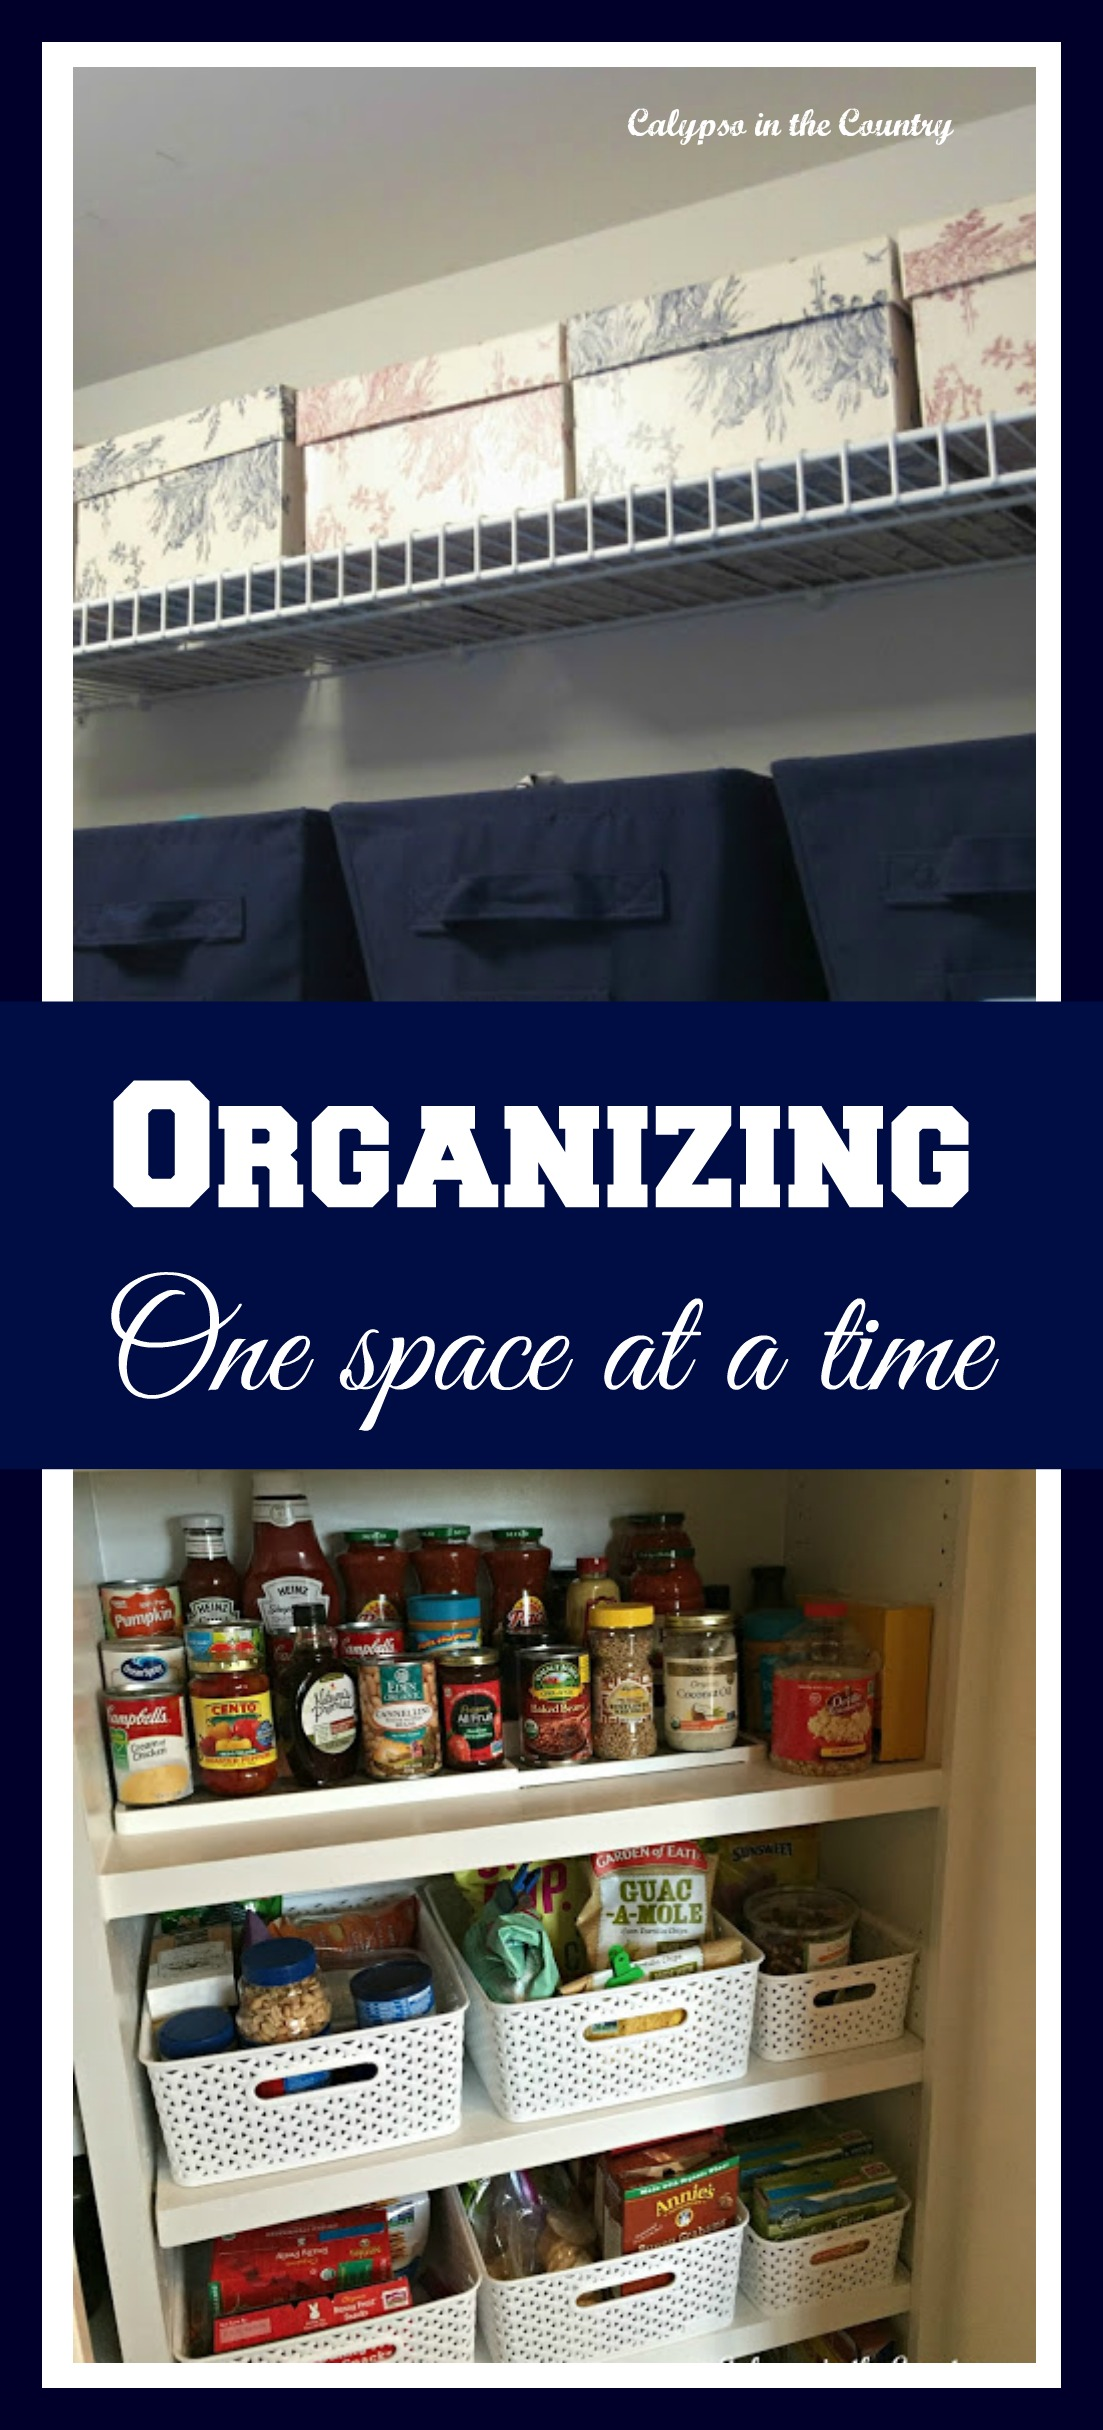 Thinking Organization – Working on One Space at a Time